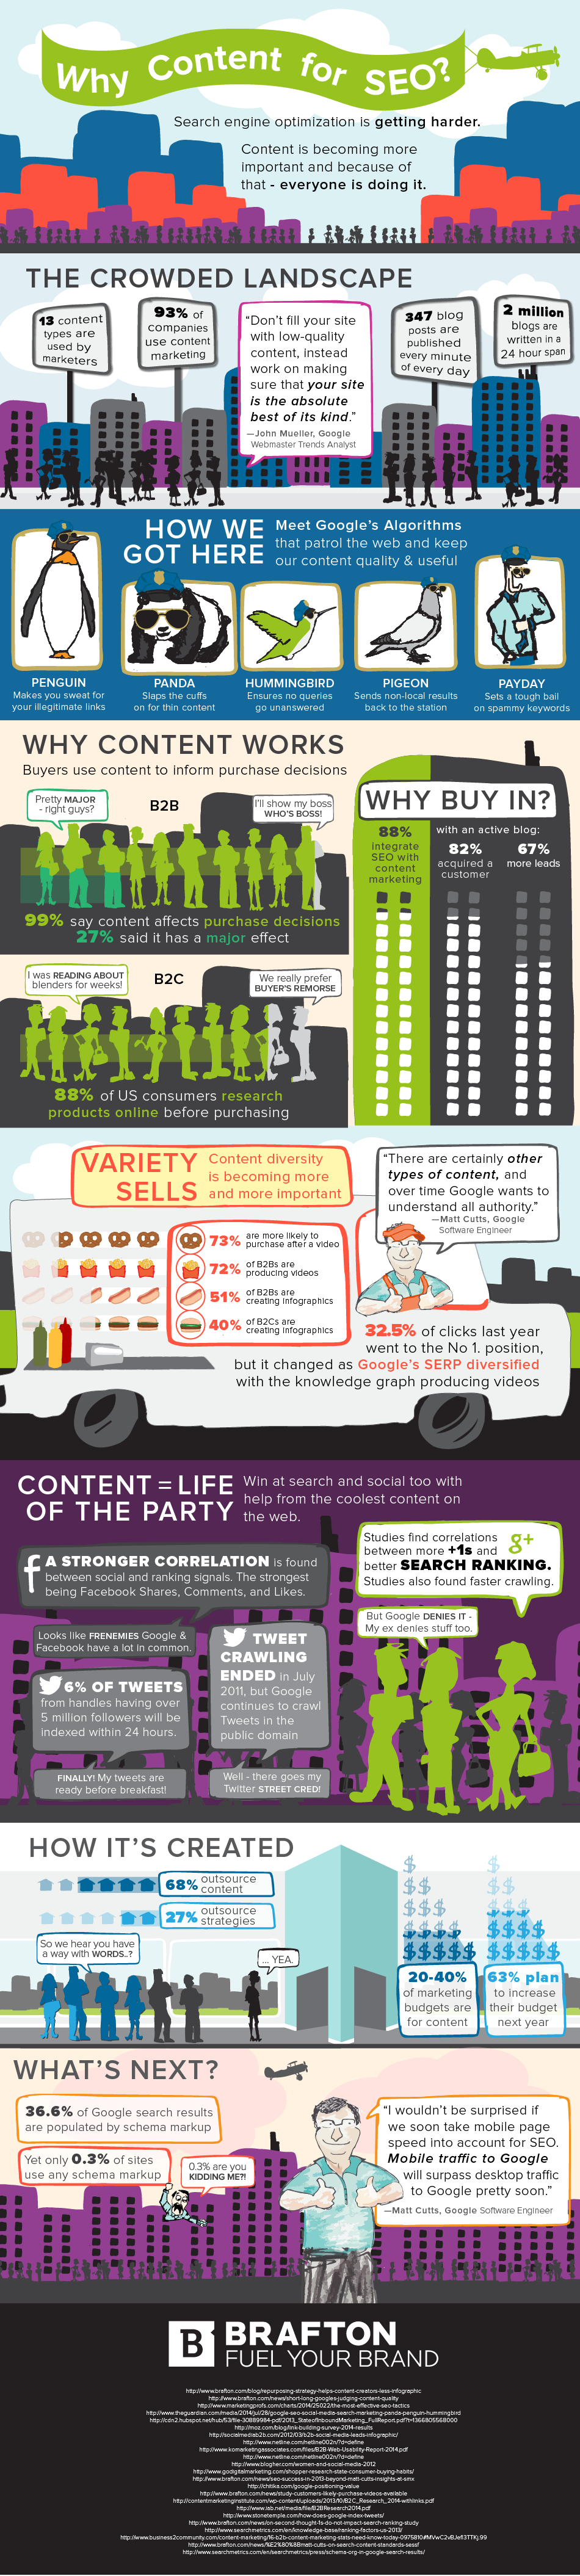 Content is becoming more important for SEO